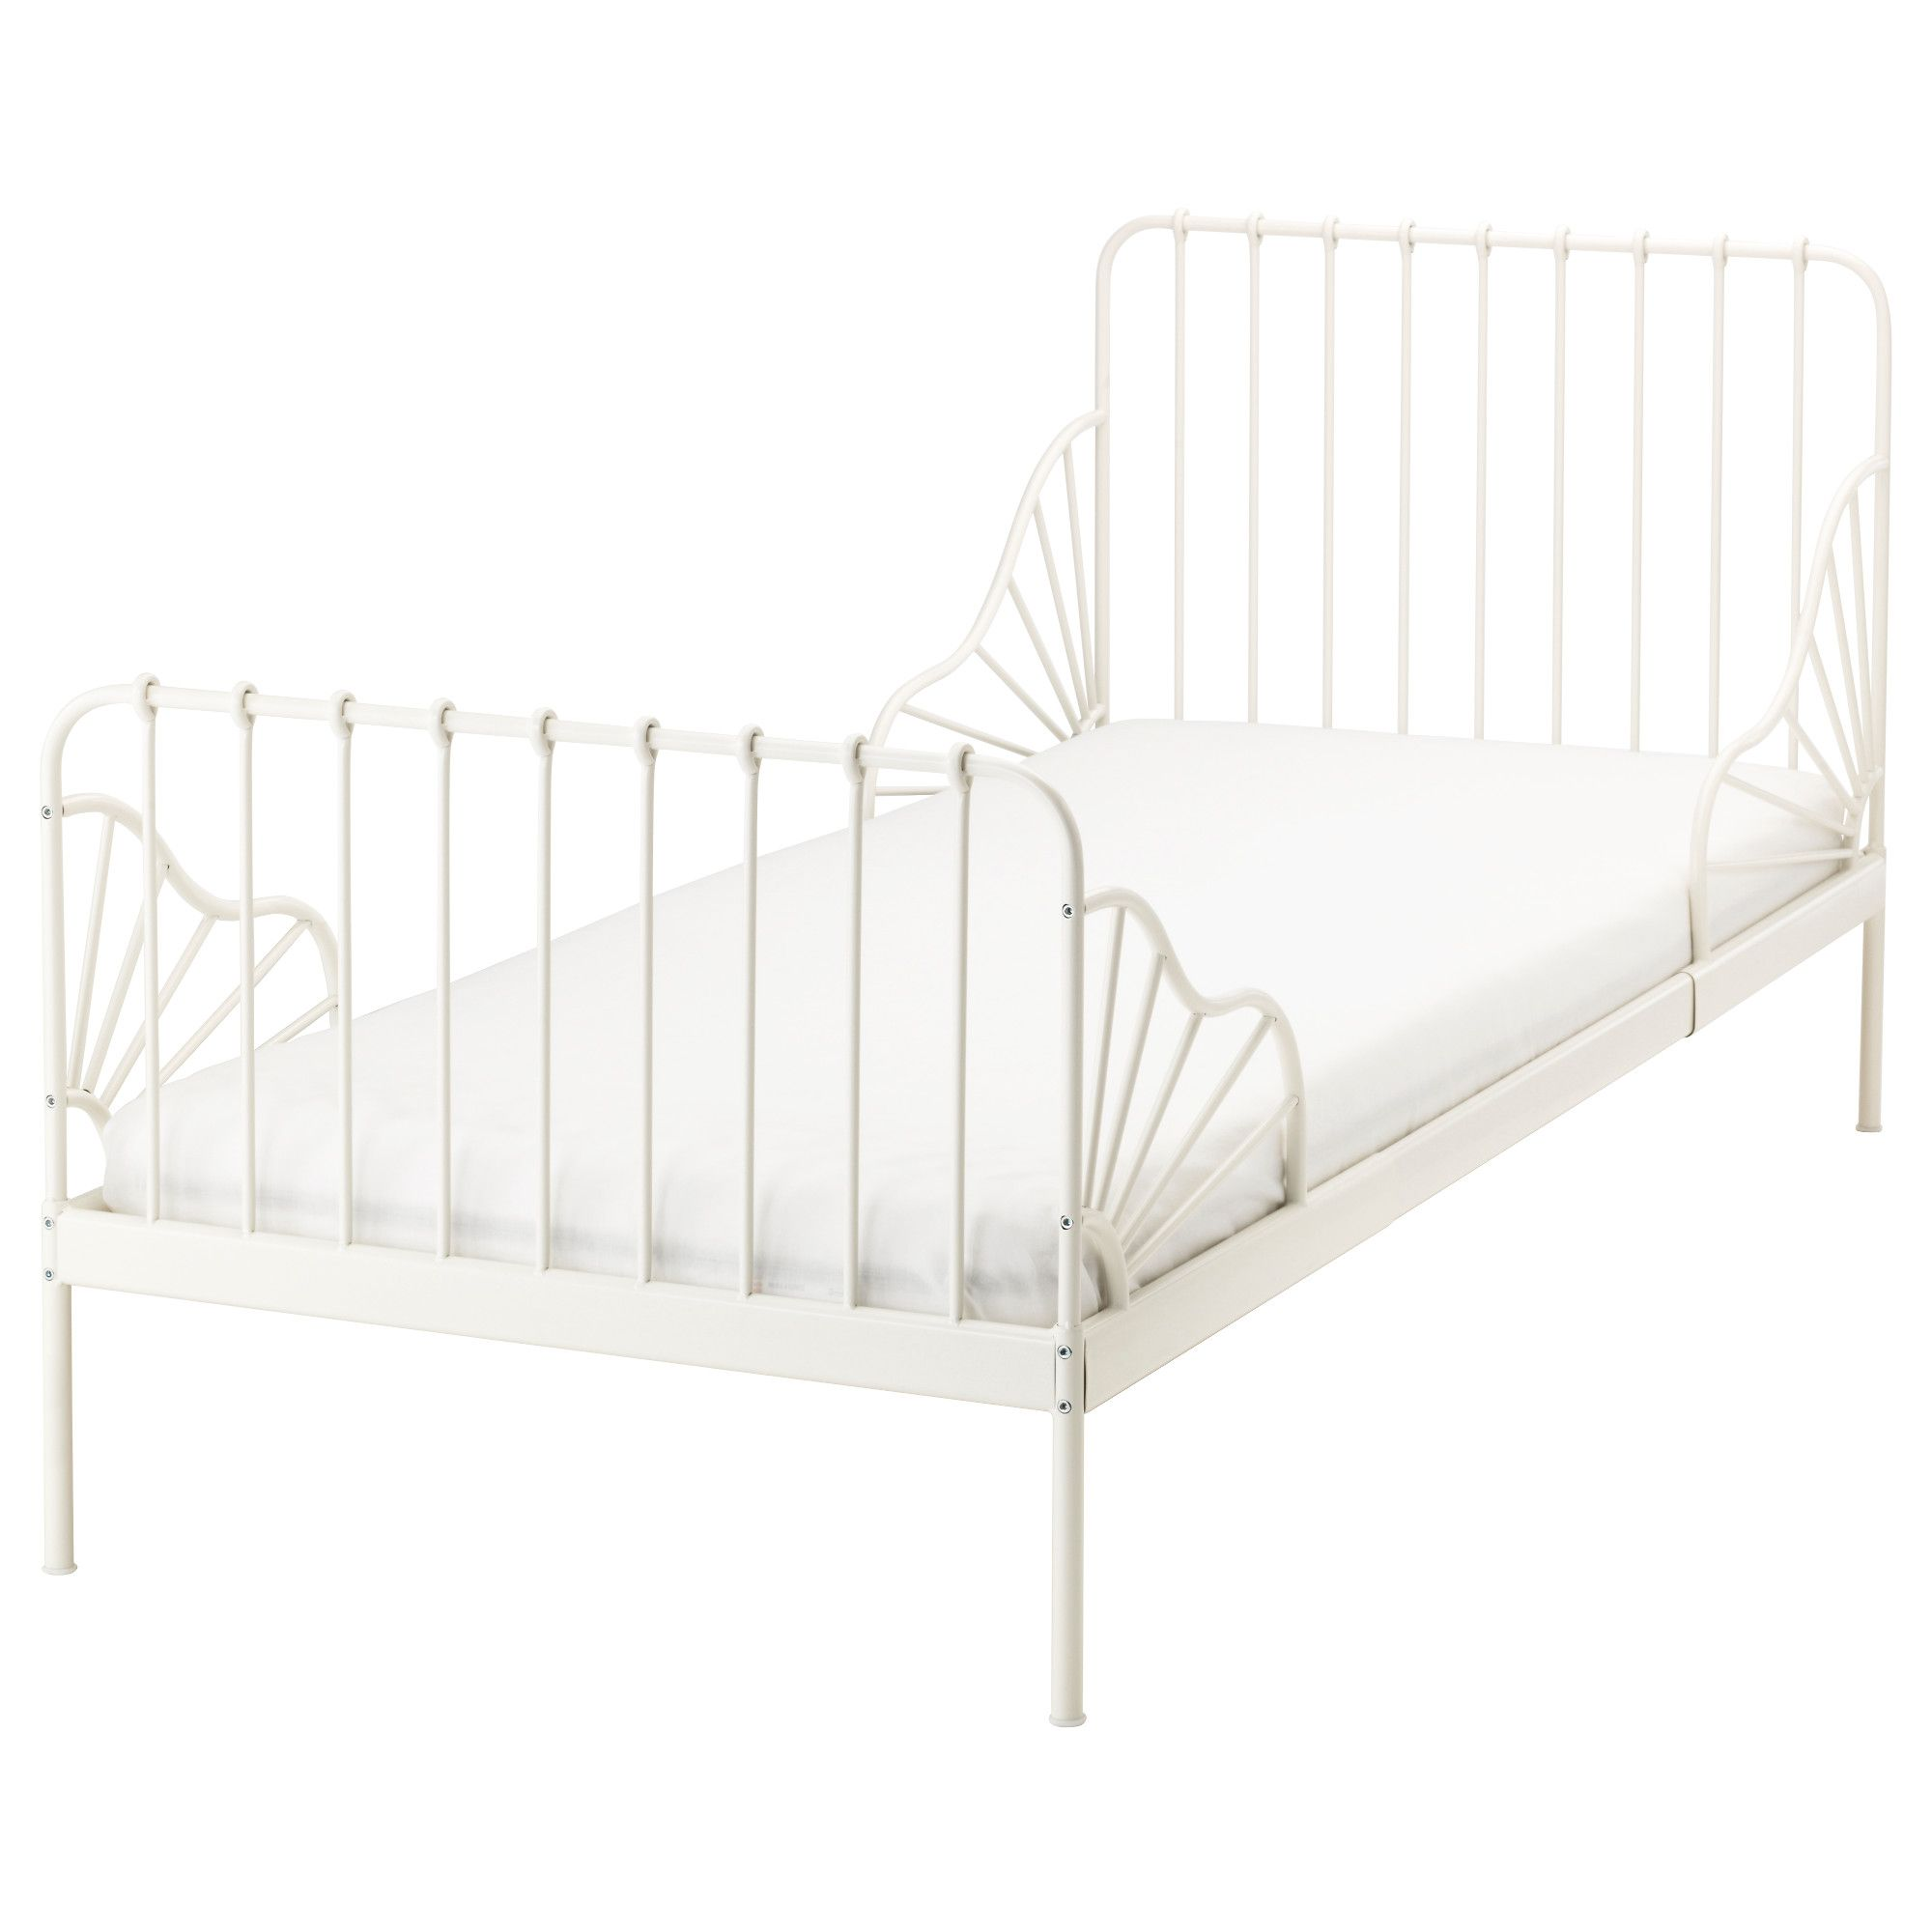 Minnen White Ext Bed With Slatted Bed Base 80x200 Cm Ikea Toddler Bed Frame Ikea Toddler Bed Ikea Bed